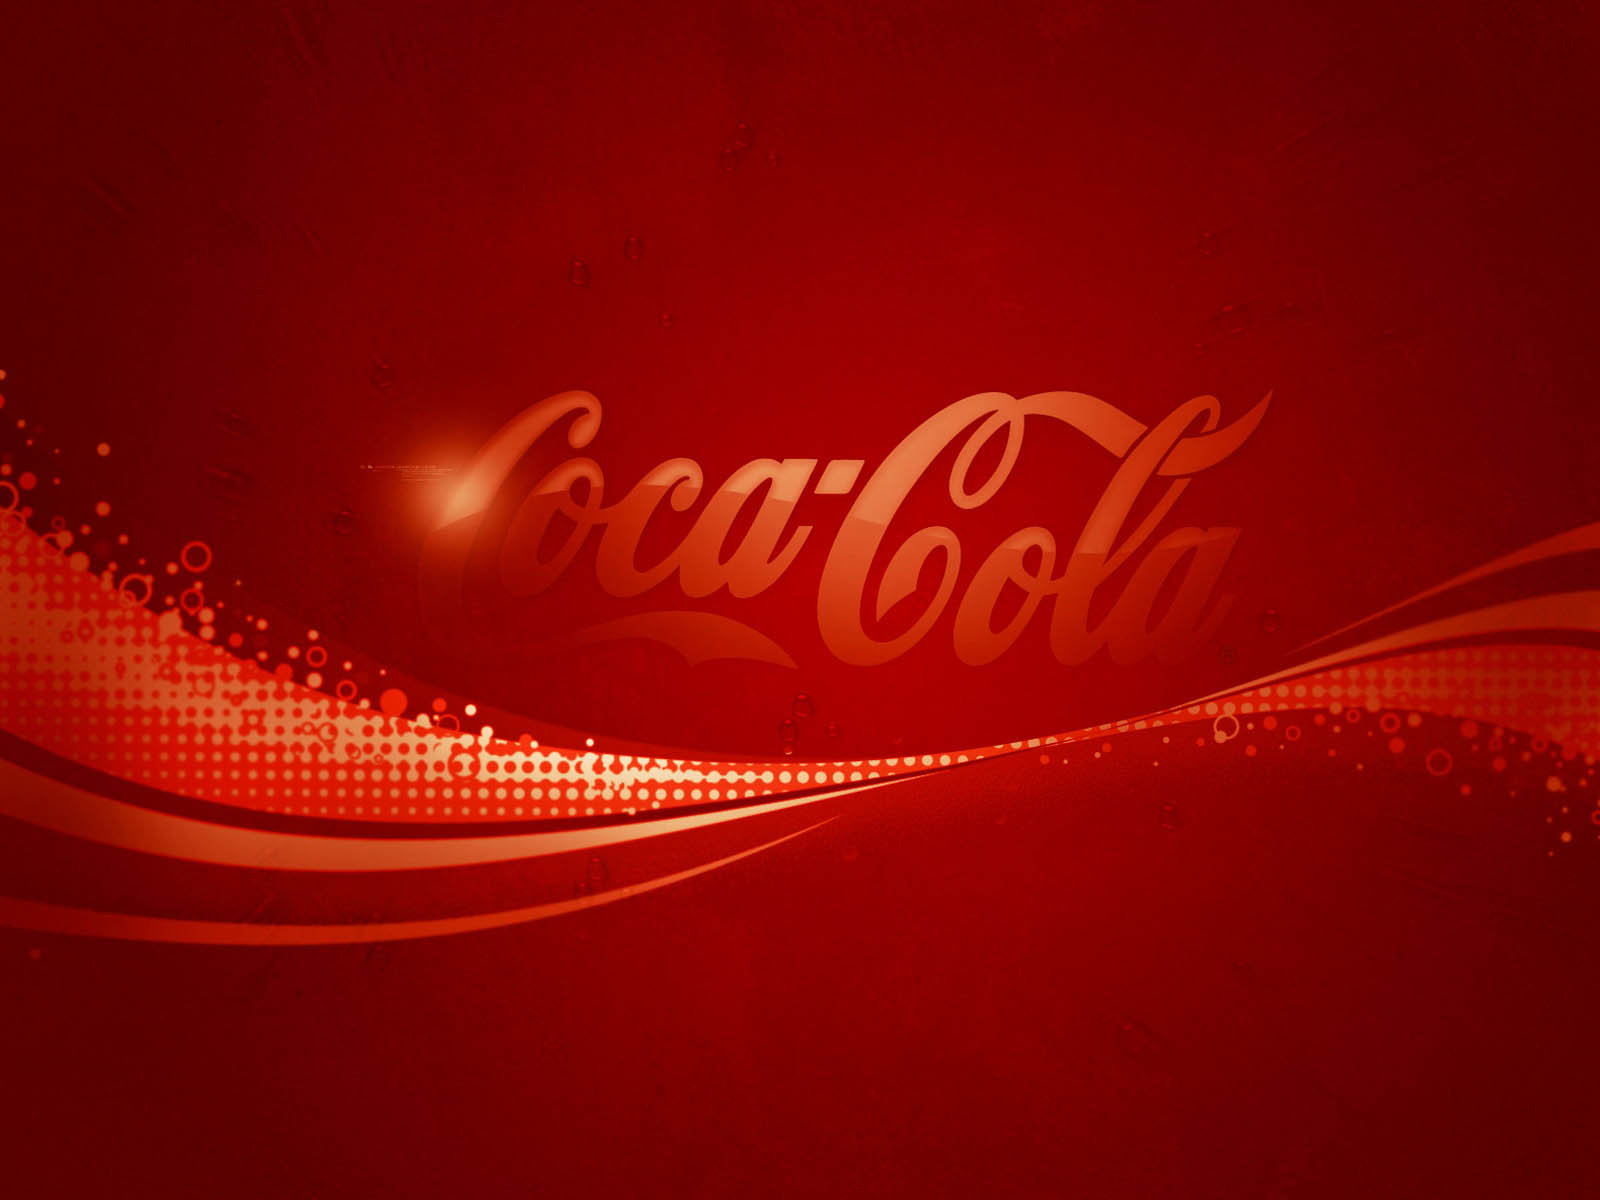 Coca Cola Wallpapers HD| HD Wallpapers ,Backgrounds ,Photos ,Pictures ...